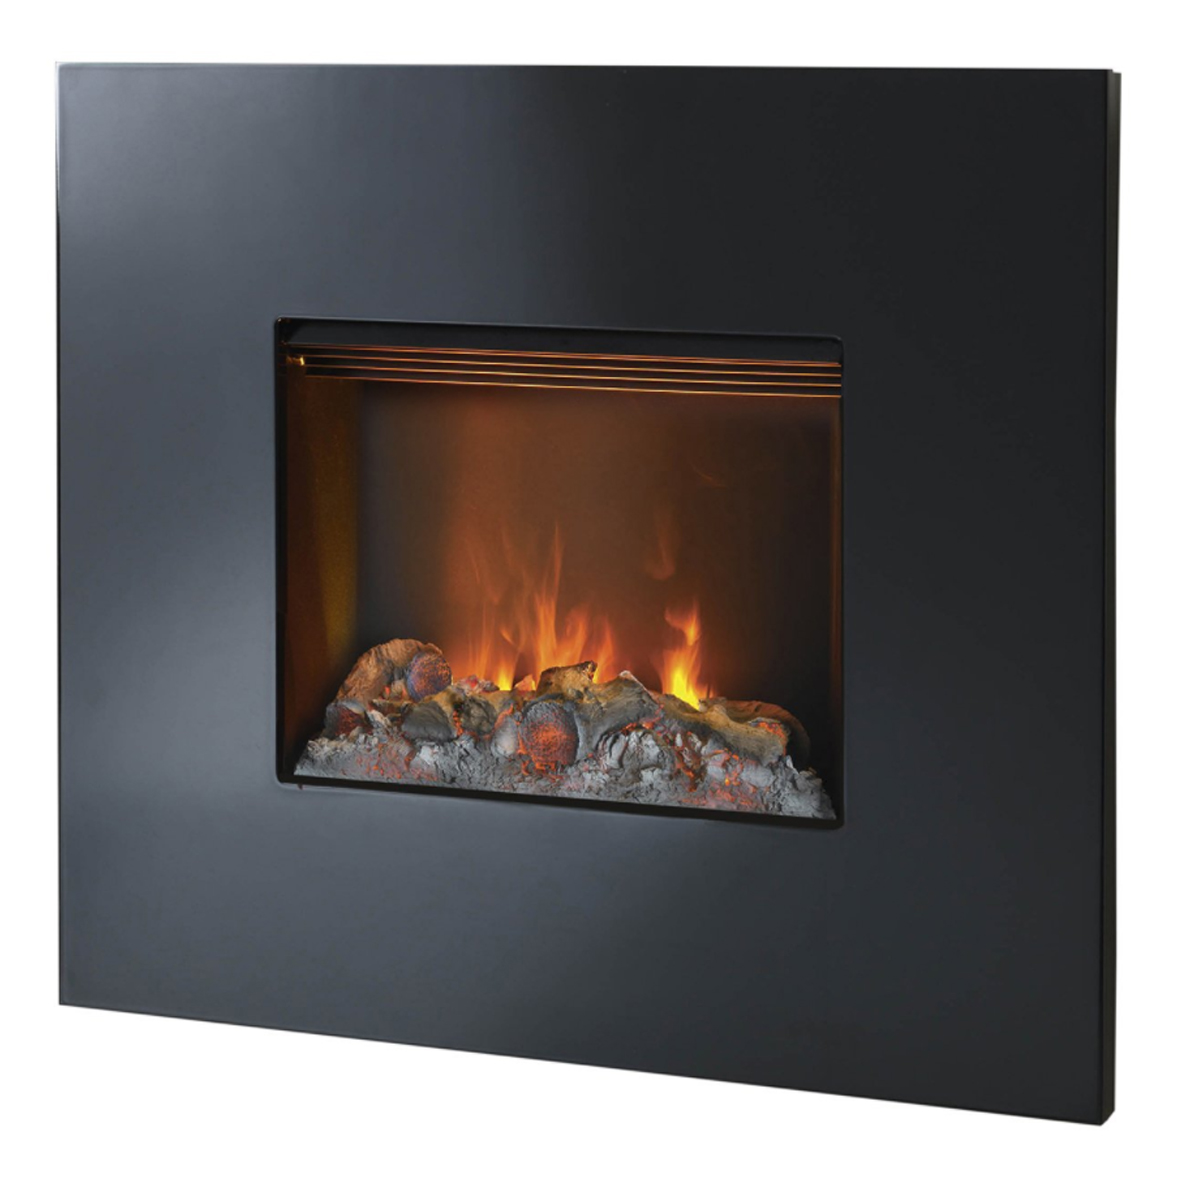 Dimplex PEMBERLEY Wall Mounted Electric Fire Heater